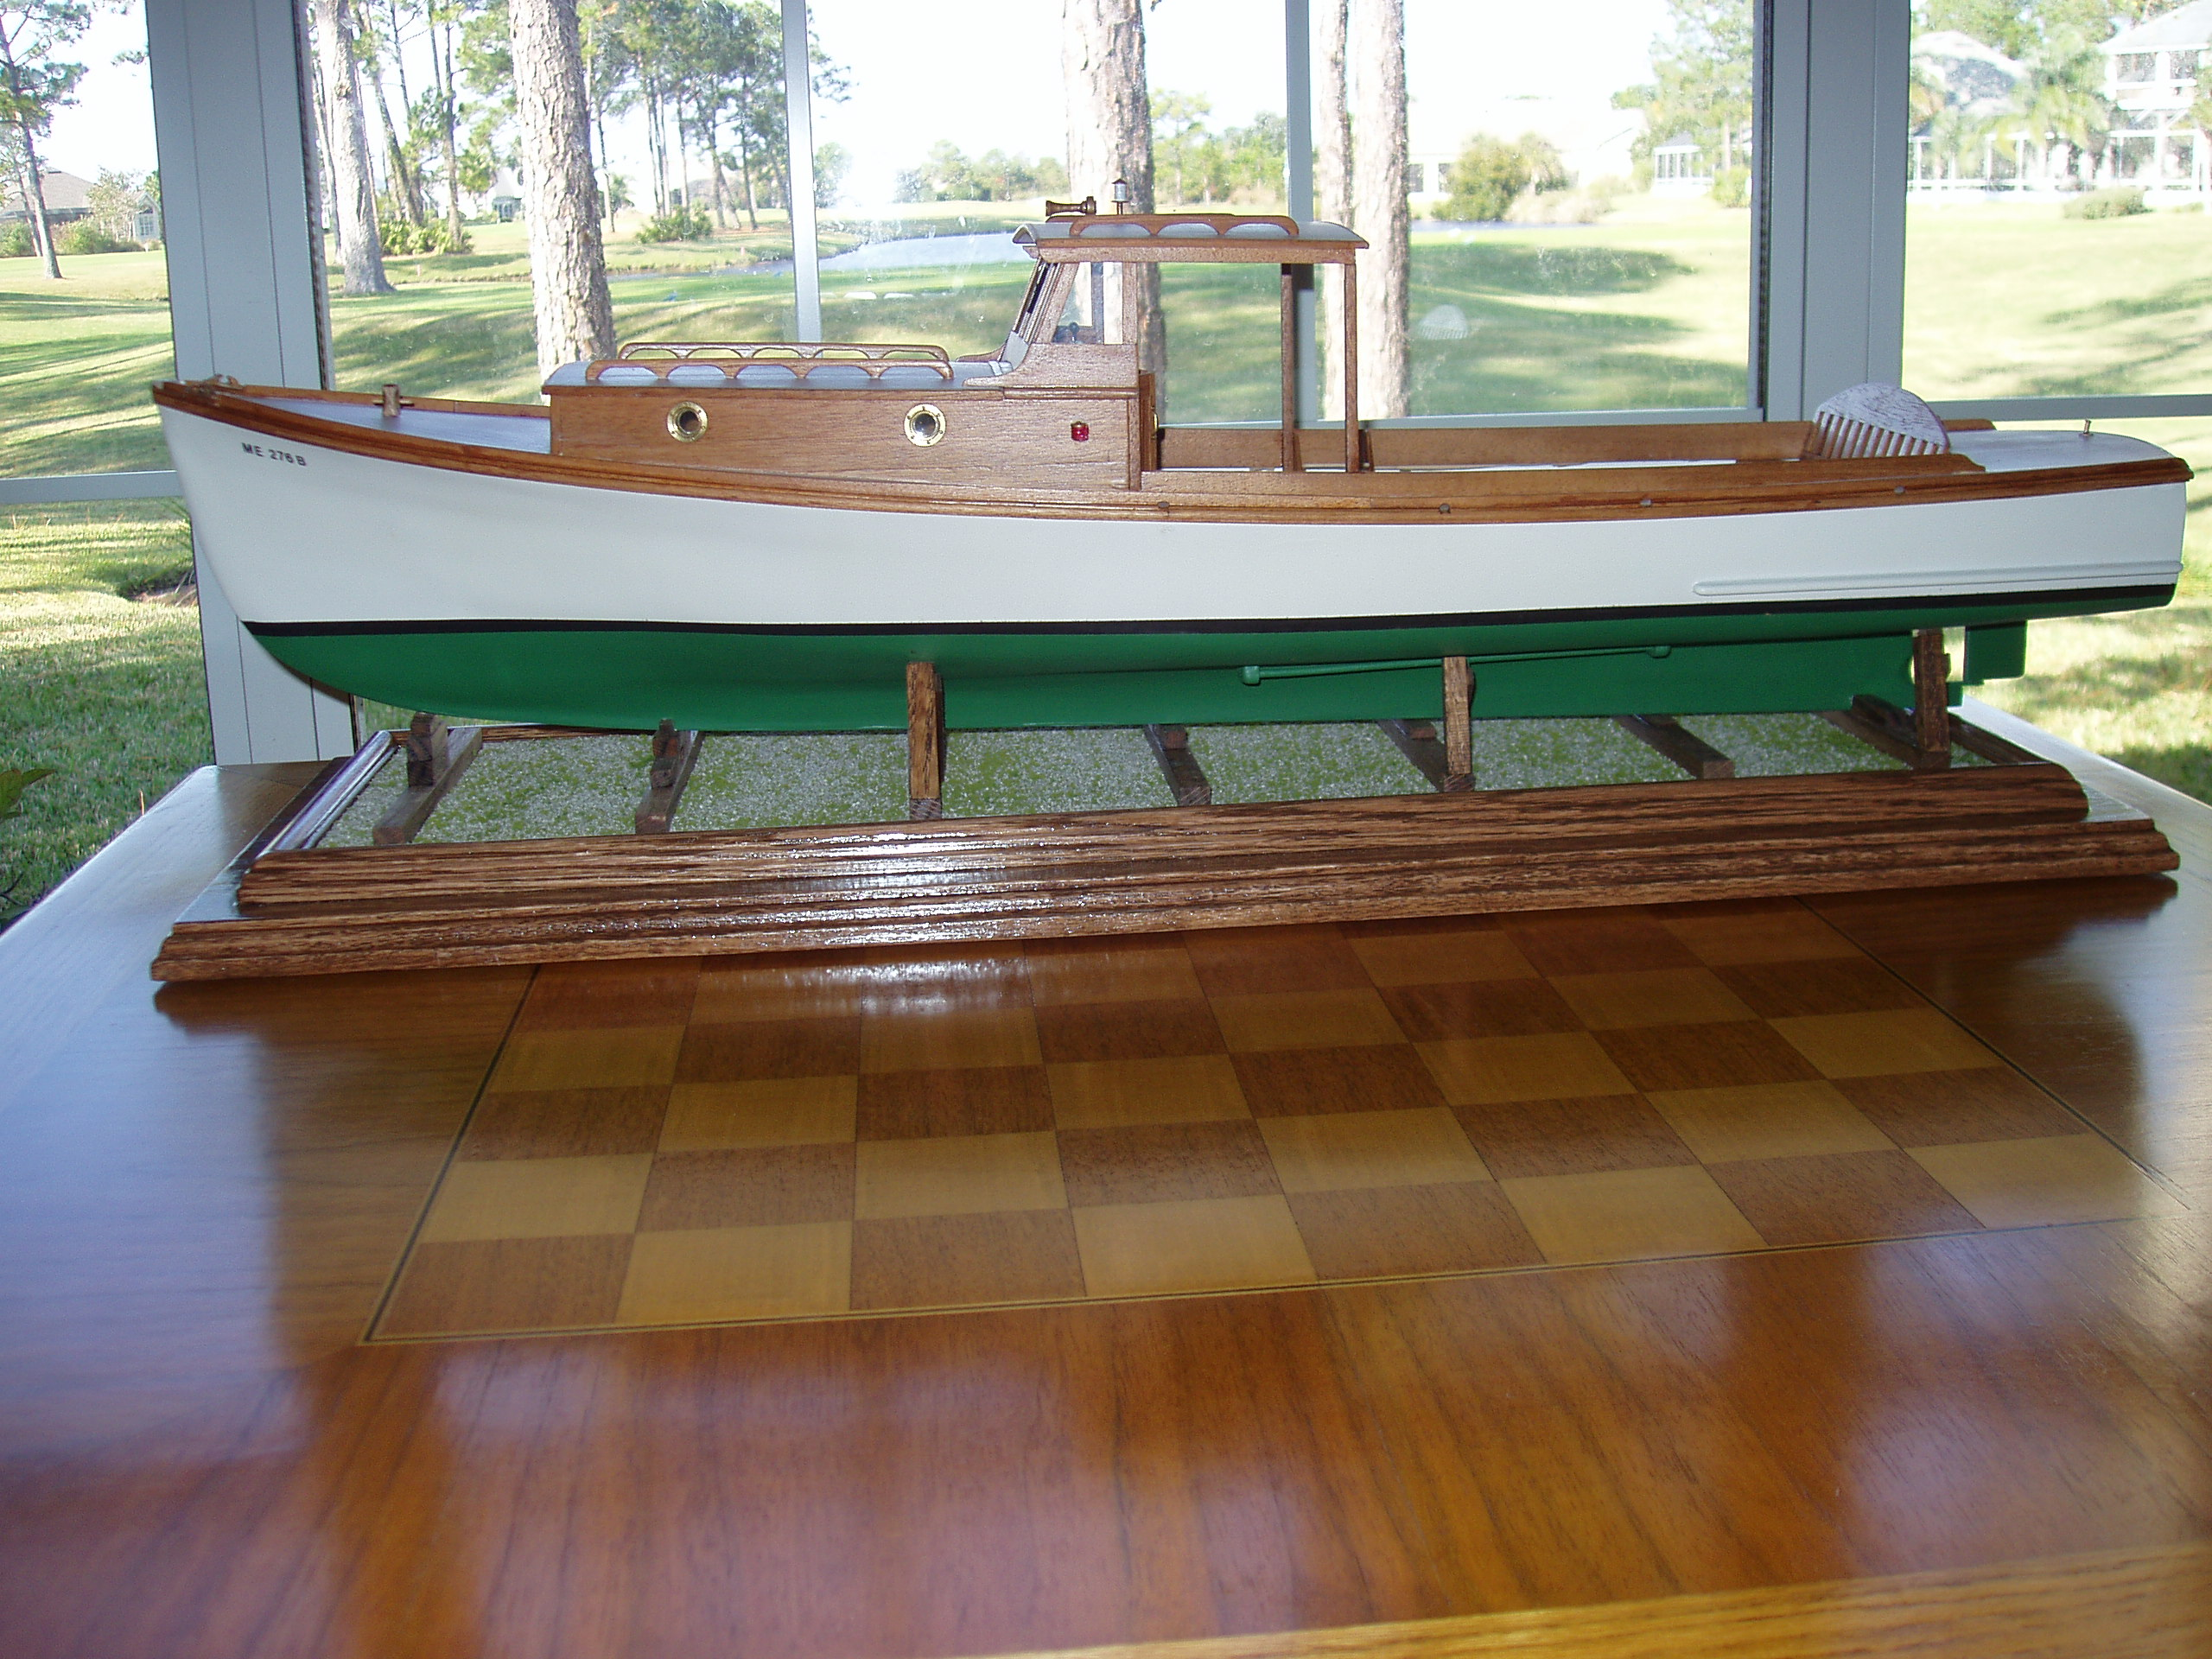 Maddy Sue boat model